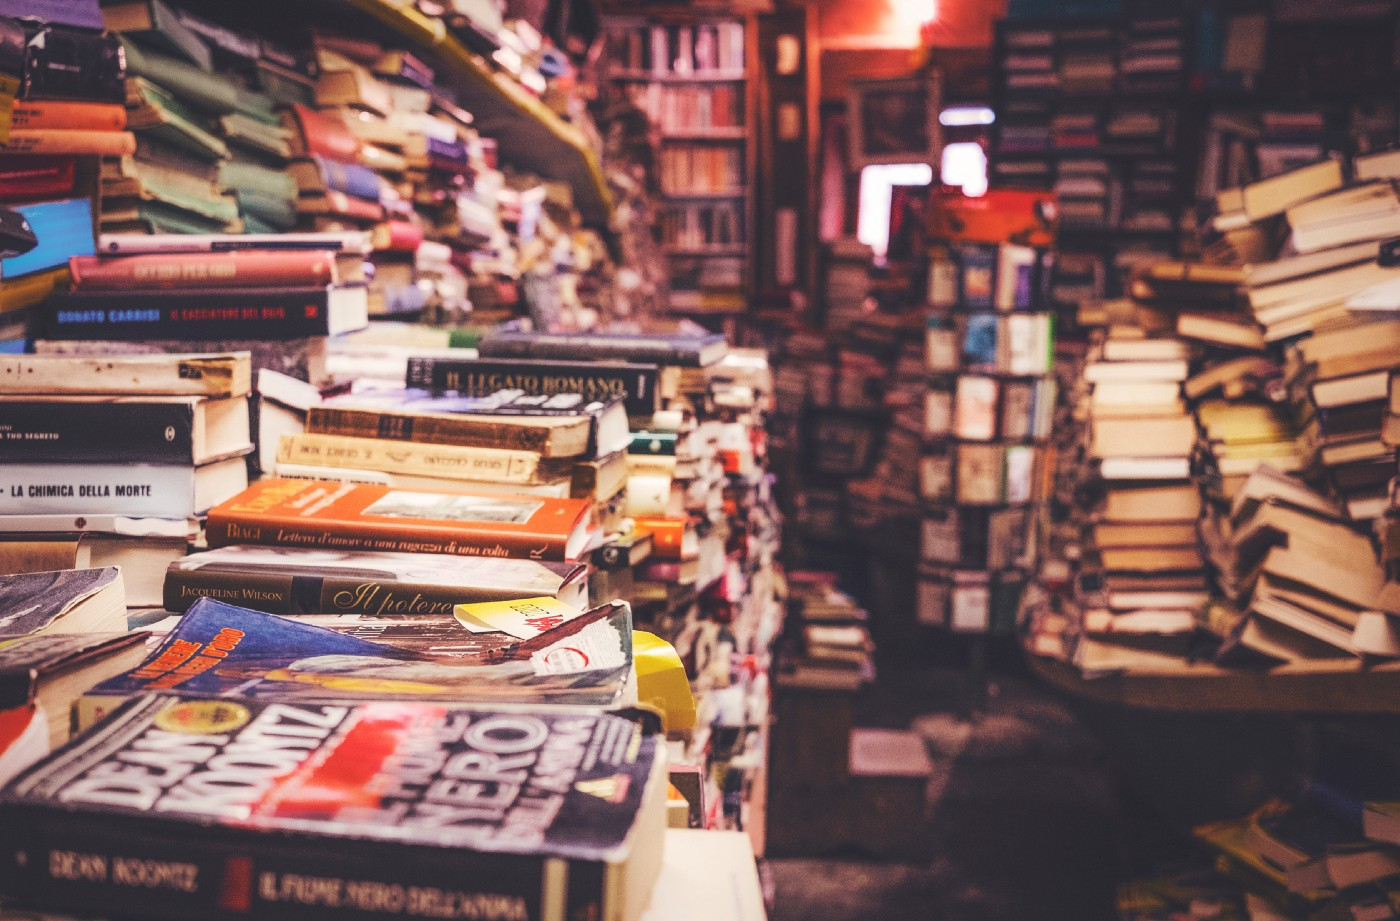 Piles and piles of books in a crowded store.